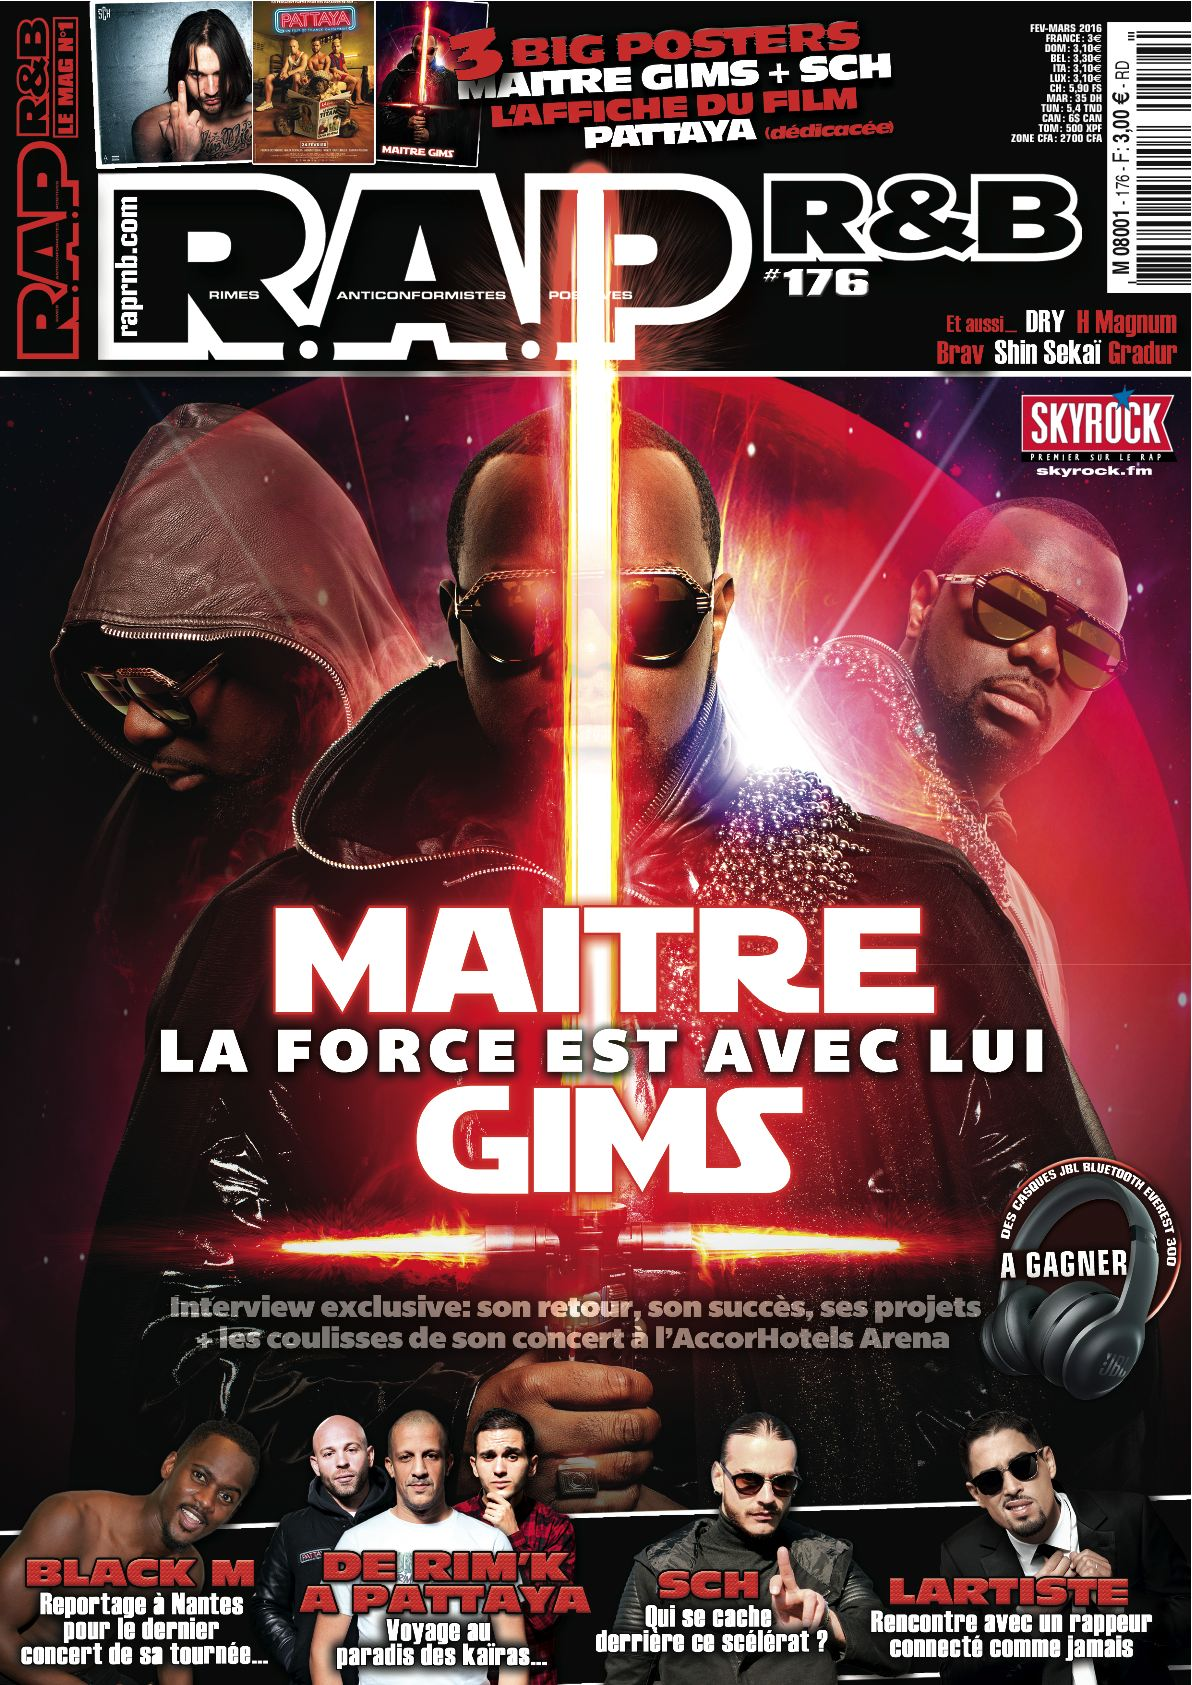 COUVERTURE R.A.P. R&B #176